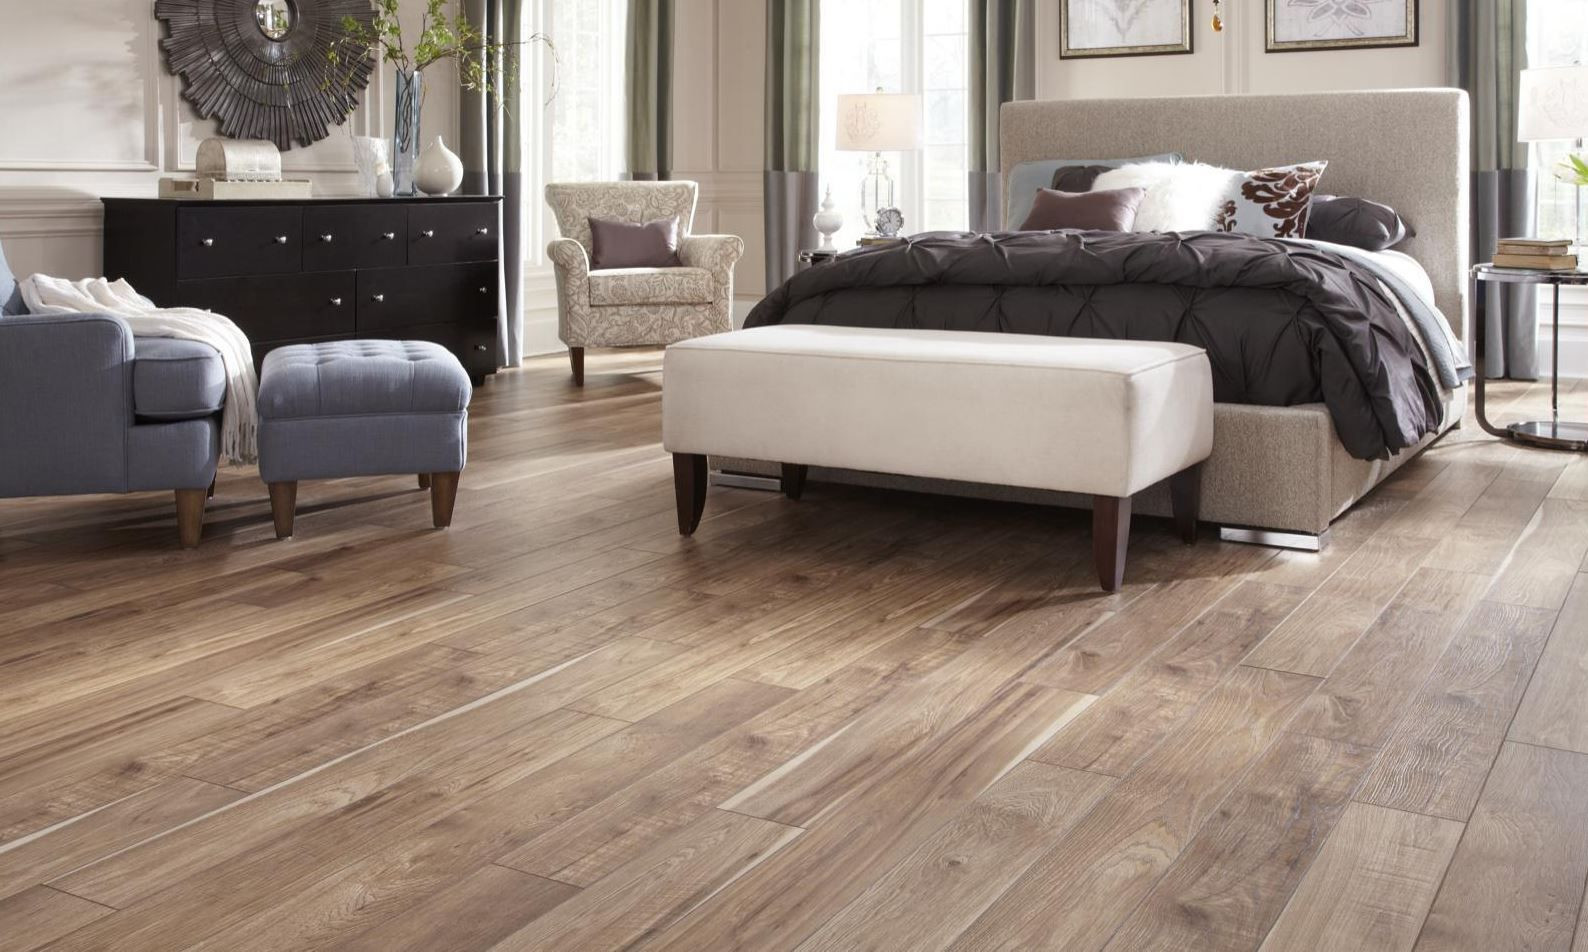 4 hickory hardwood flooring of luxury vinyl plank flooring that looks like wood in mannington adura luxury vinyl plank flooring 57aa7d065f9b58974a2be49e jpg